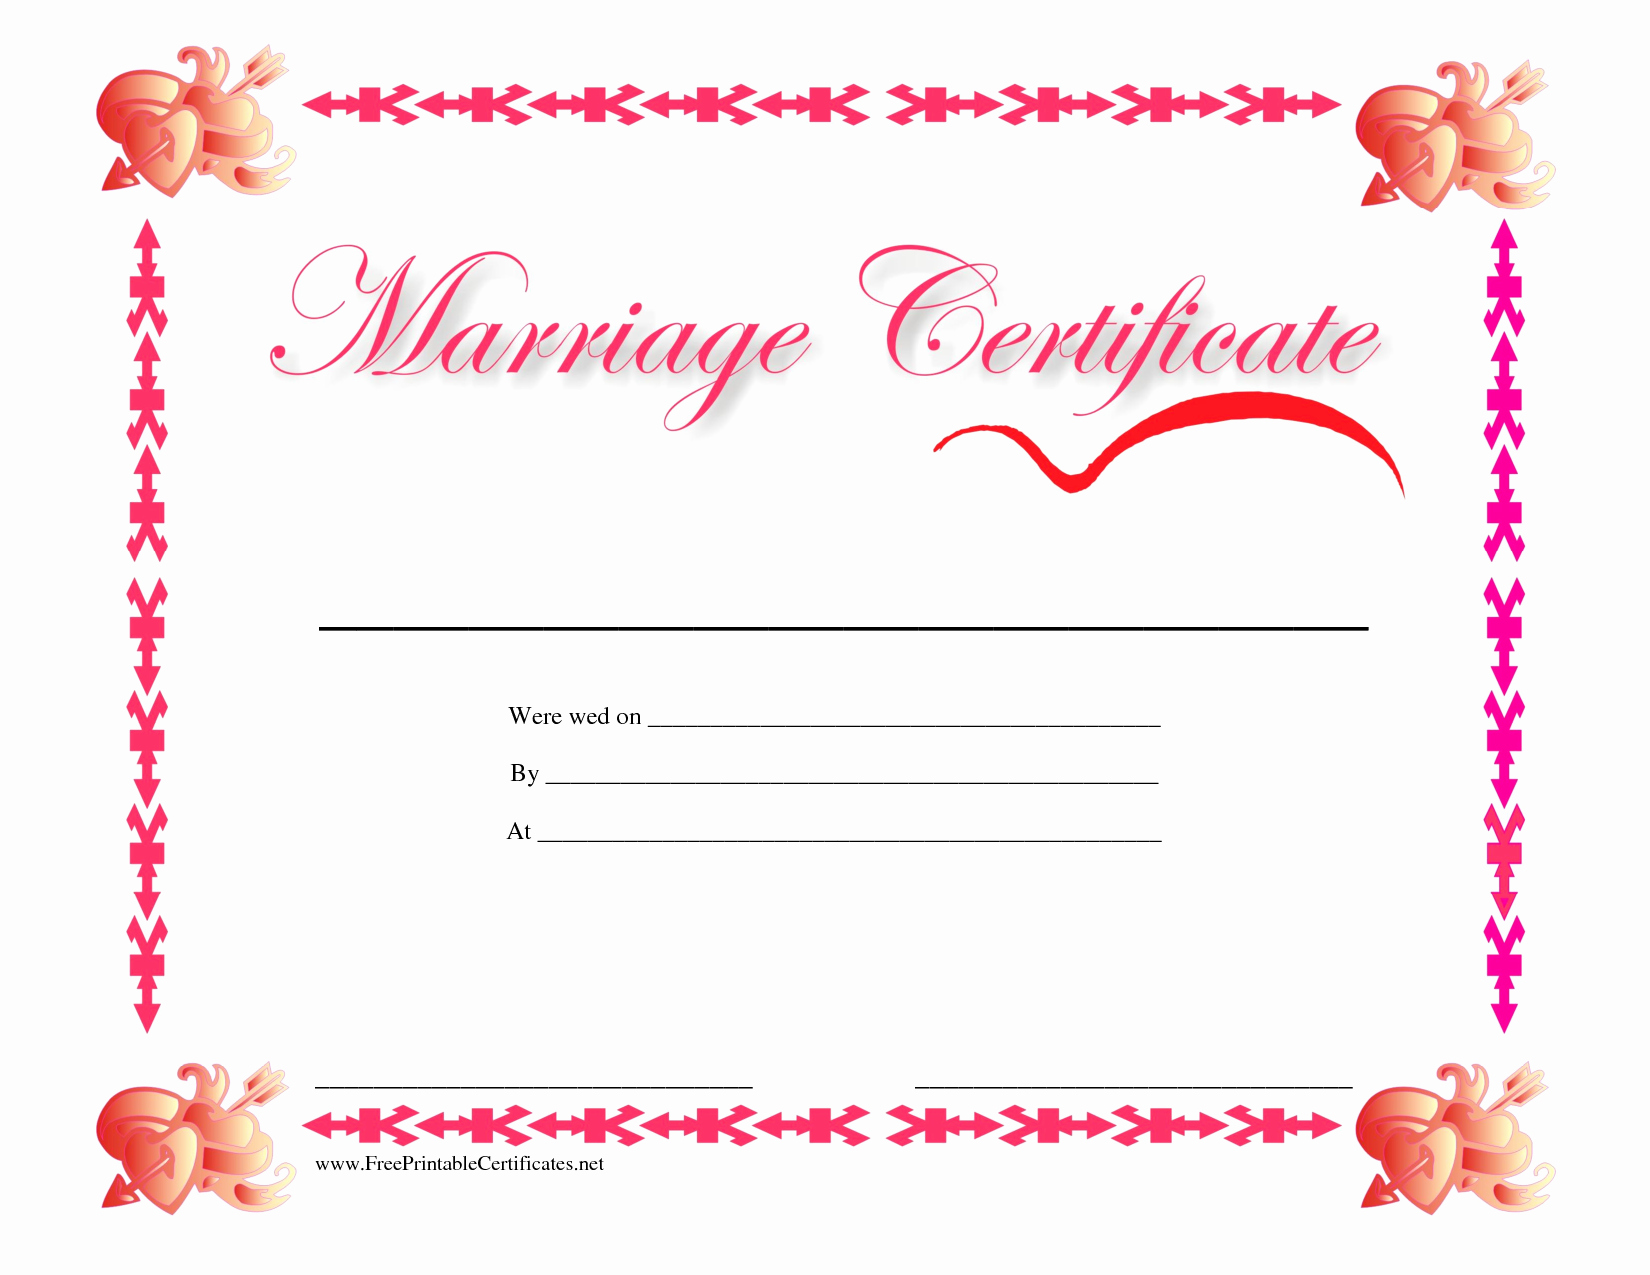 Islamic Marriage Certificate Template Fresh Certificate Template Category Page 28 Efoza